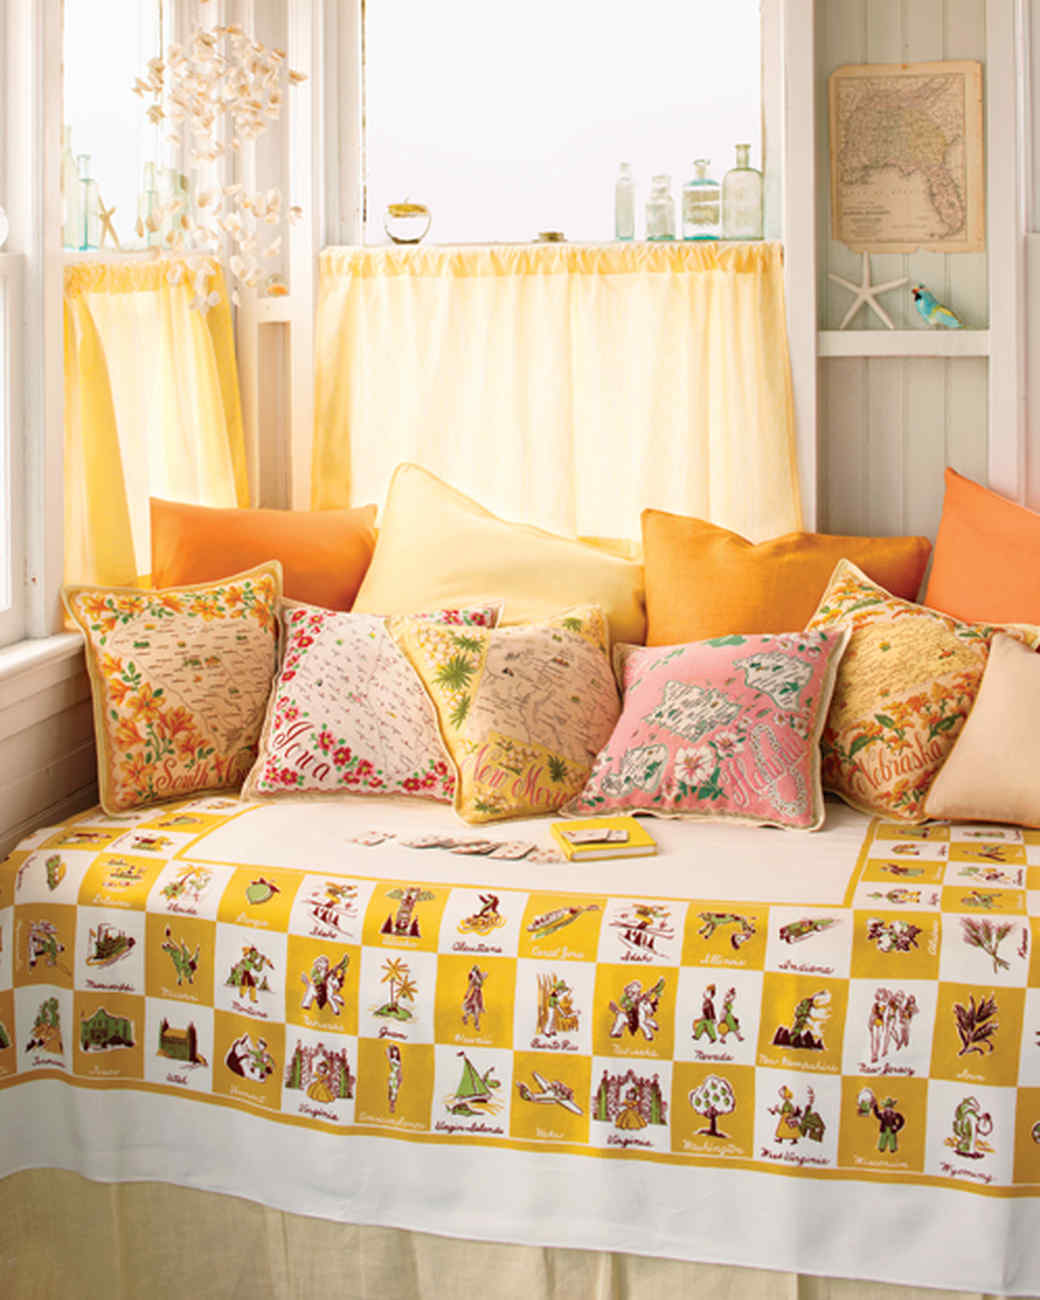 mld105810_0710_pillows_v1.jpg